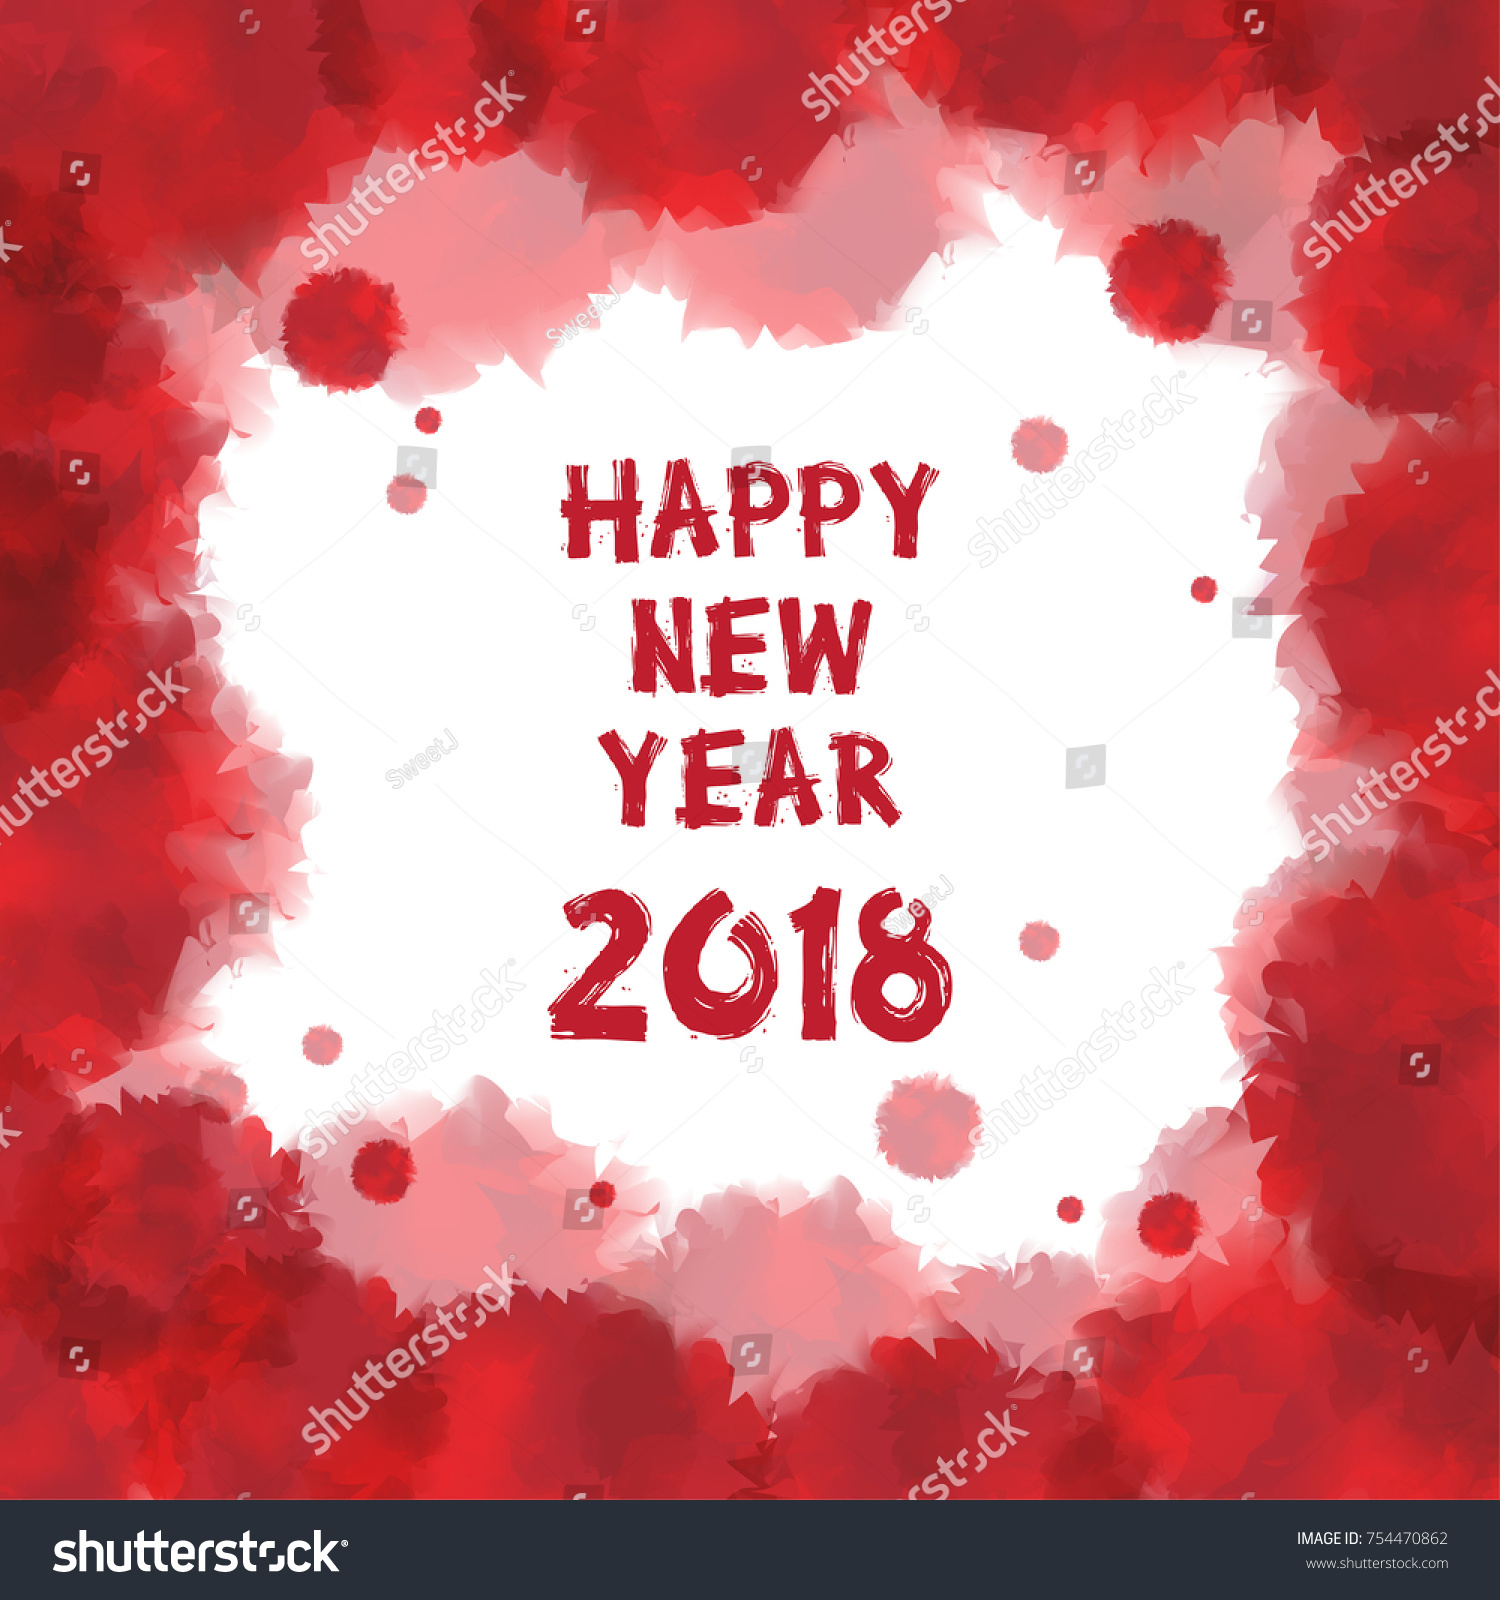 happy new year 2018 greetings card stock vector 754470862